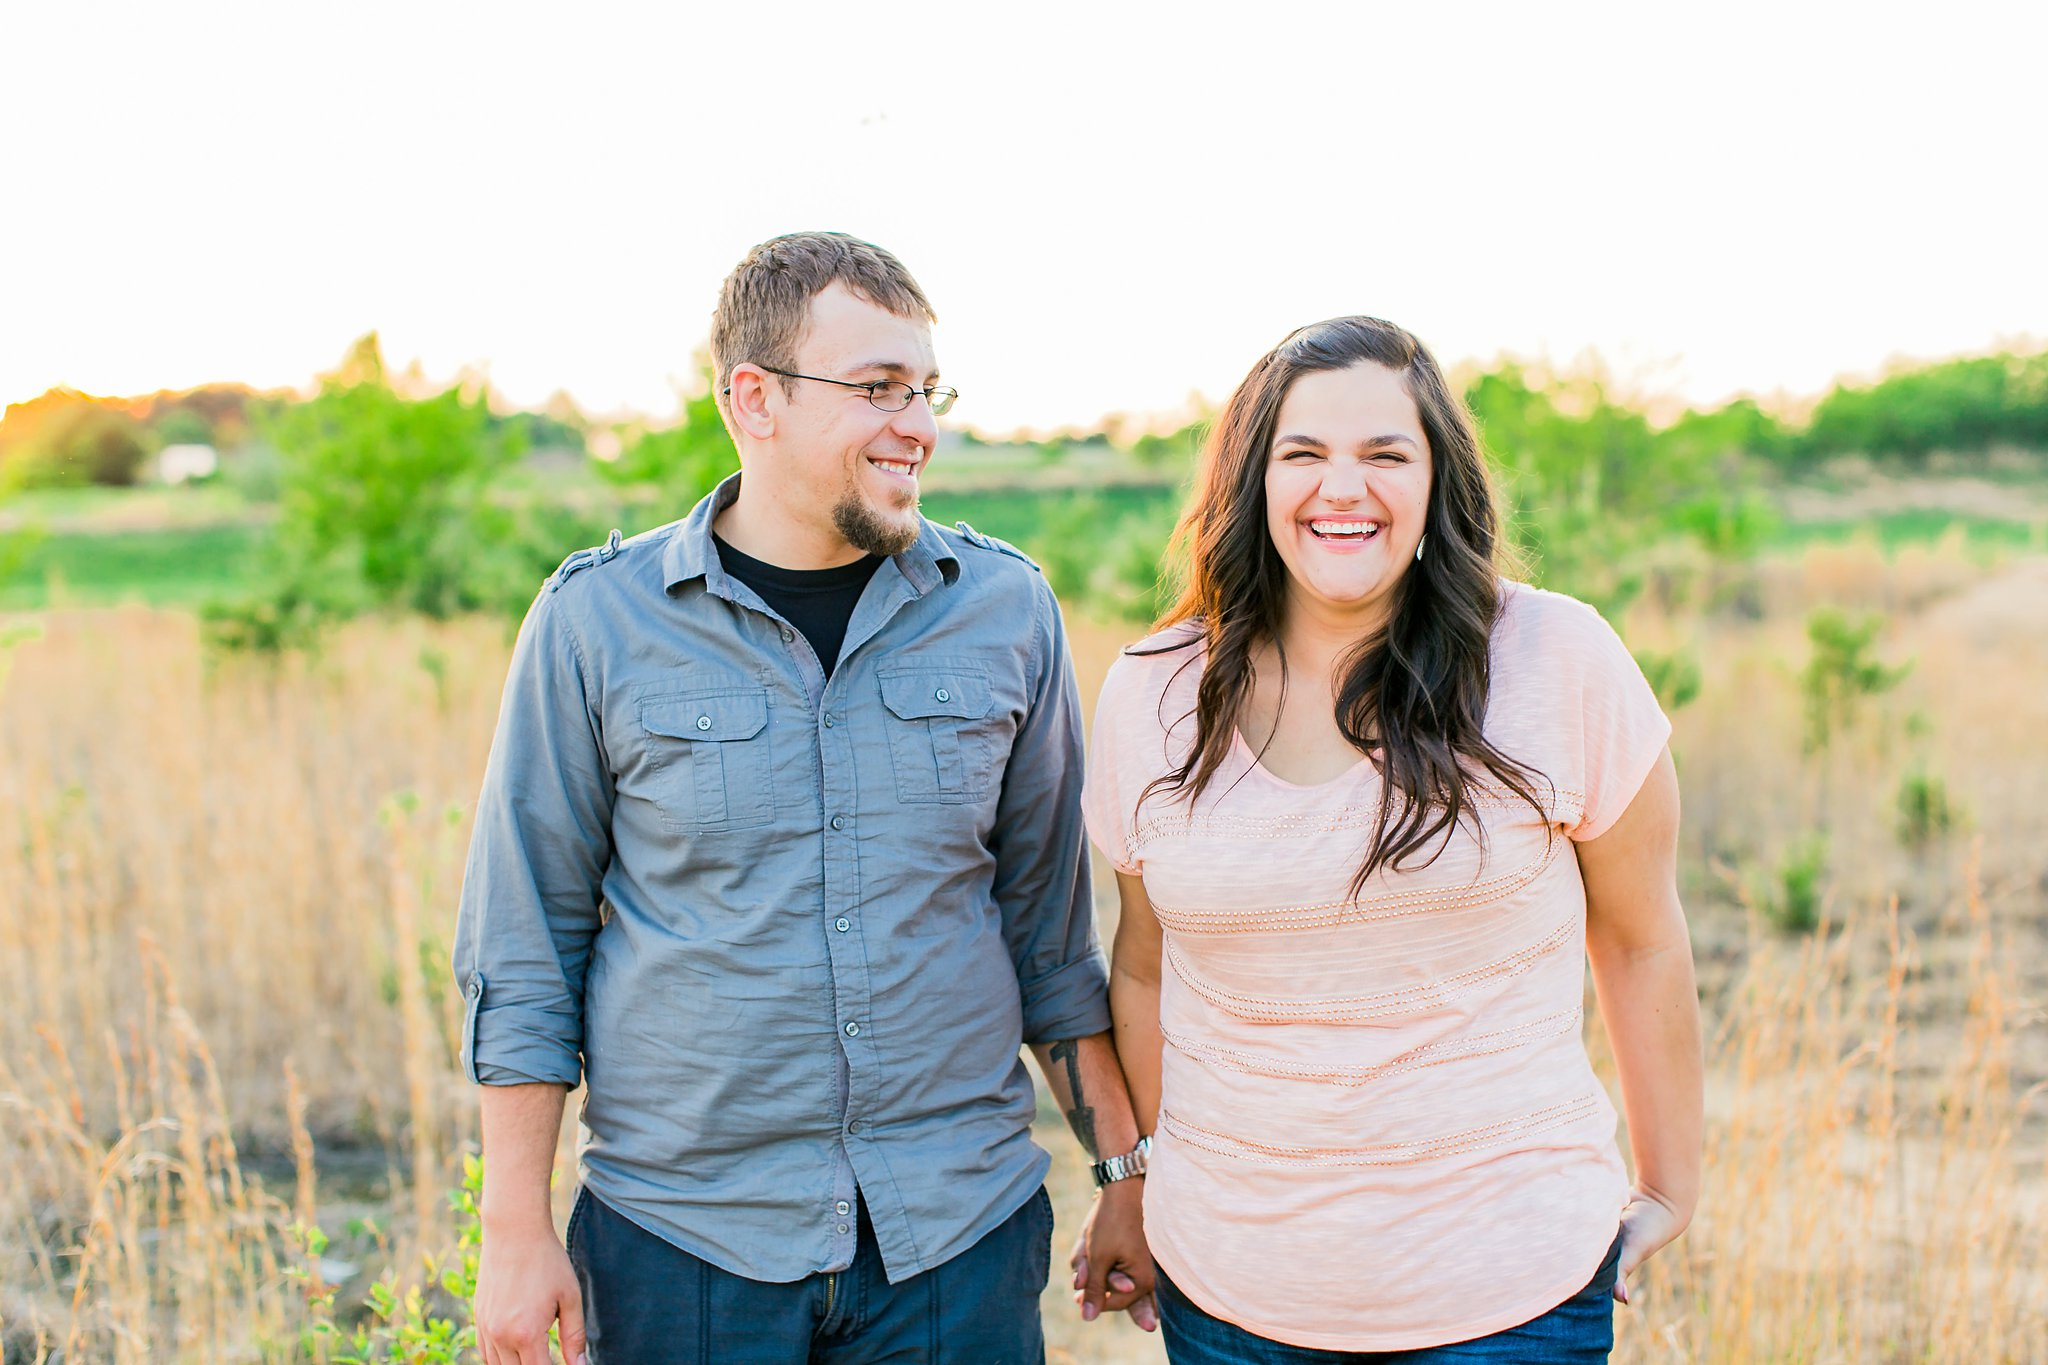 Fredericksburg Family Photographer Martins Megan Kelsey Photography-7662.jpg